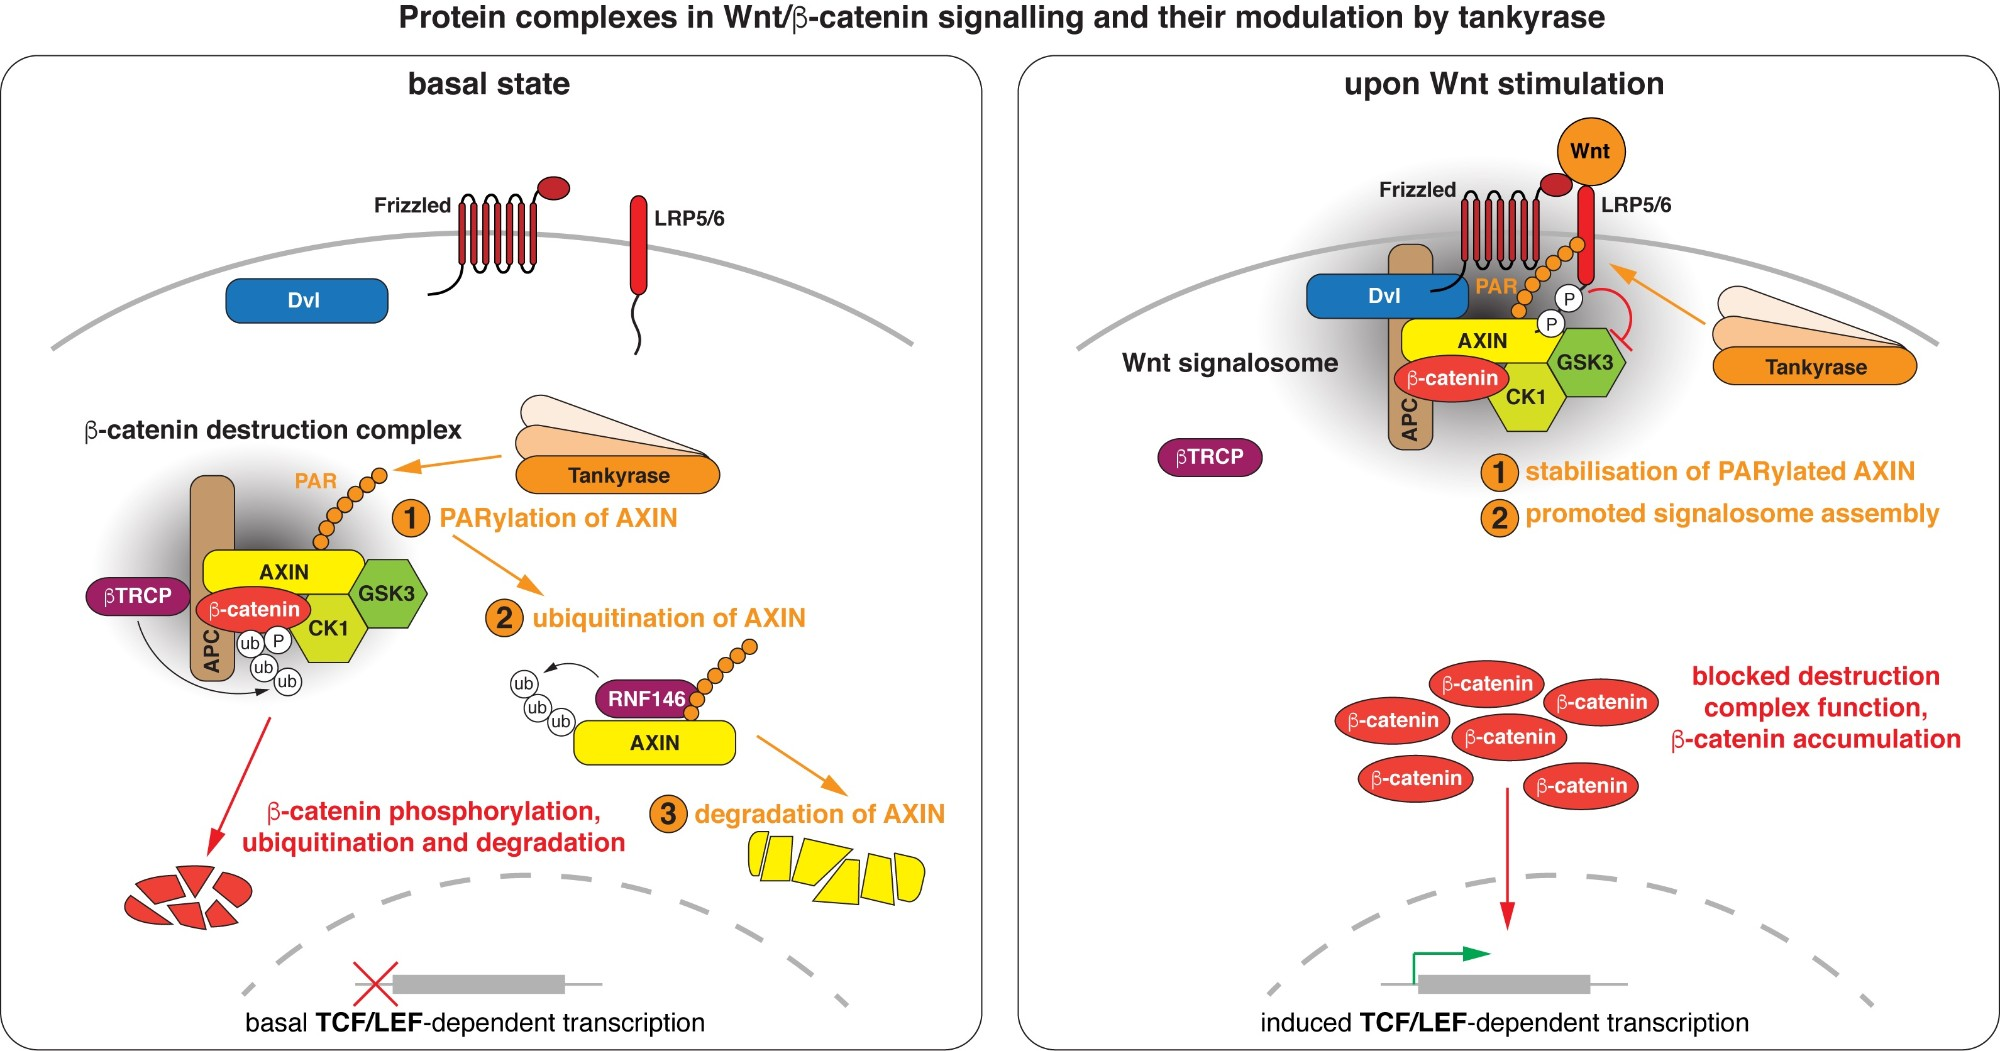 "Wnt/beta-catenin signalling revolves around controlling the levels of the transcriptional co-activator beta-catenin. A multi-protein beta-catenin destruction complex captures cytoplasmic beta-catenin and limits its abundance by initiating its phosphorylation- and ubiquitination-dependent degradation. Notably, destruction complex function is impaired in the vast majority of colorectal cancer cases. Wnt stimulation remodels the destruction complex into a membrane-localised ""Wnt signalosome"" incapable of destabilising beta-catenin. Tankyrase controls the receptiveness of cells to incoming Wnt signals by PARylating AXIN, thereby destabilising the destruction complex or promoting Wnt signalosome formation. (Images modified from Mariotti et al., 2017)"